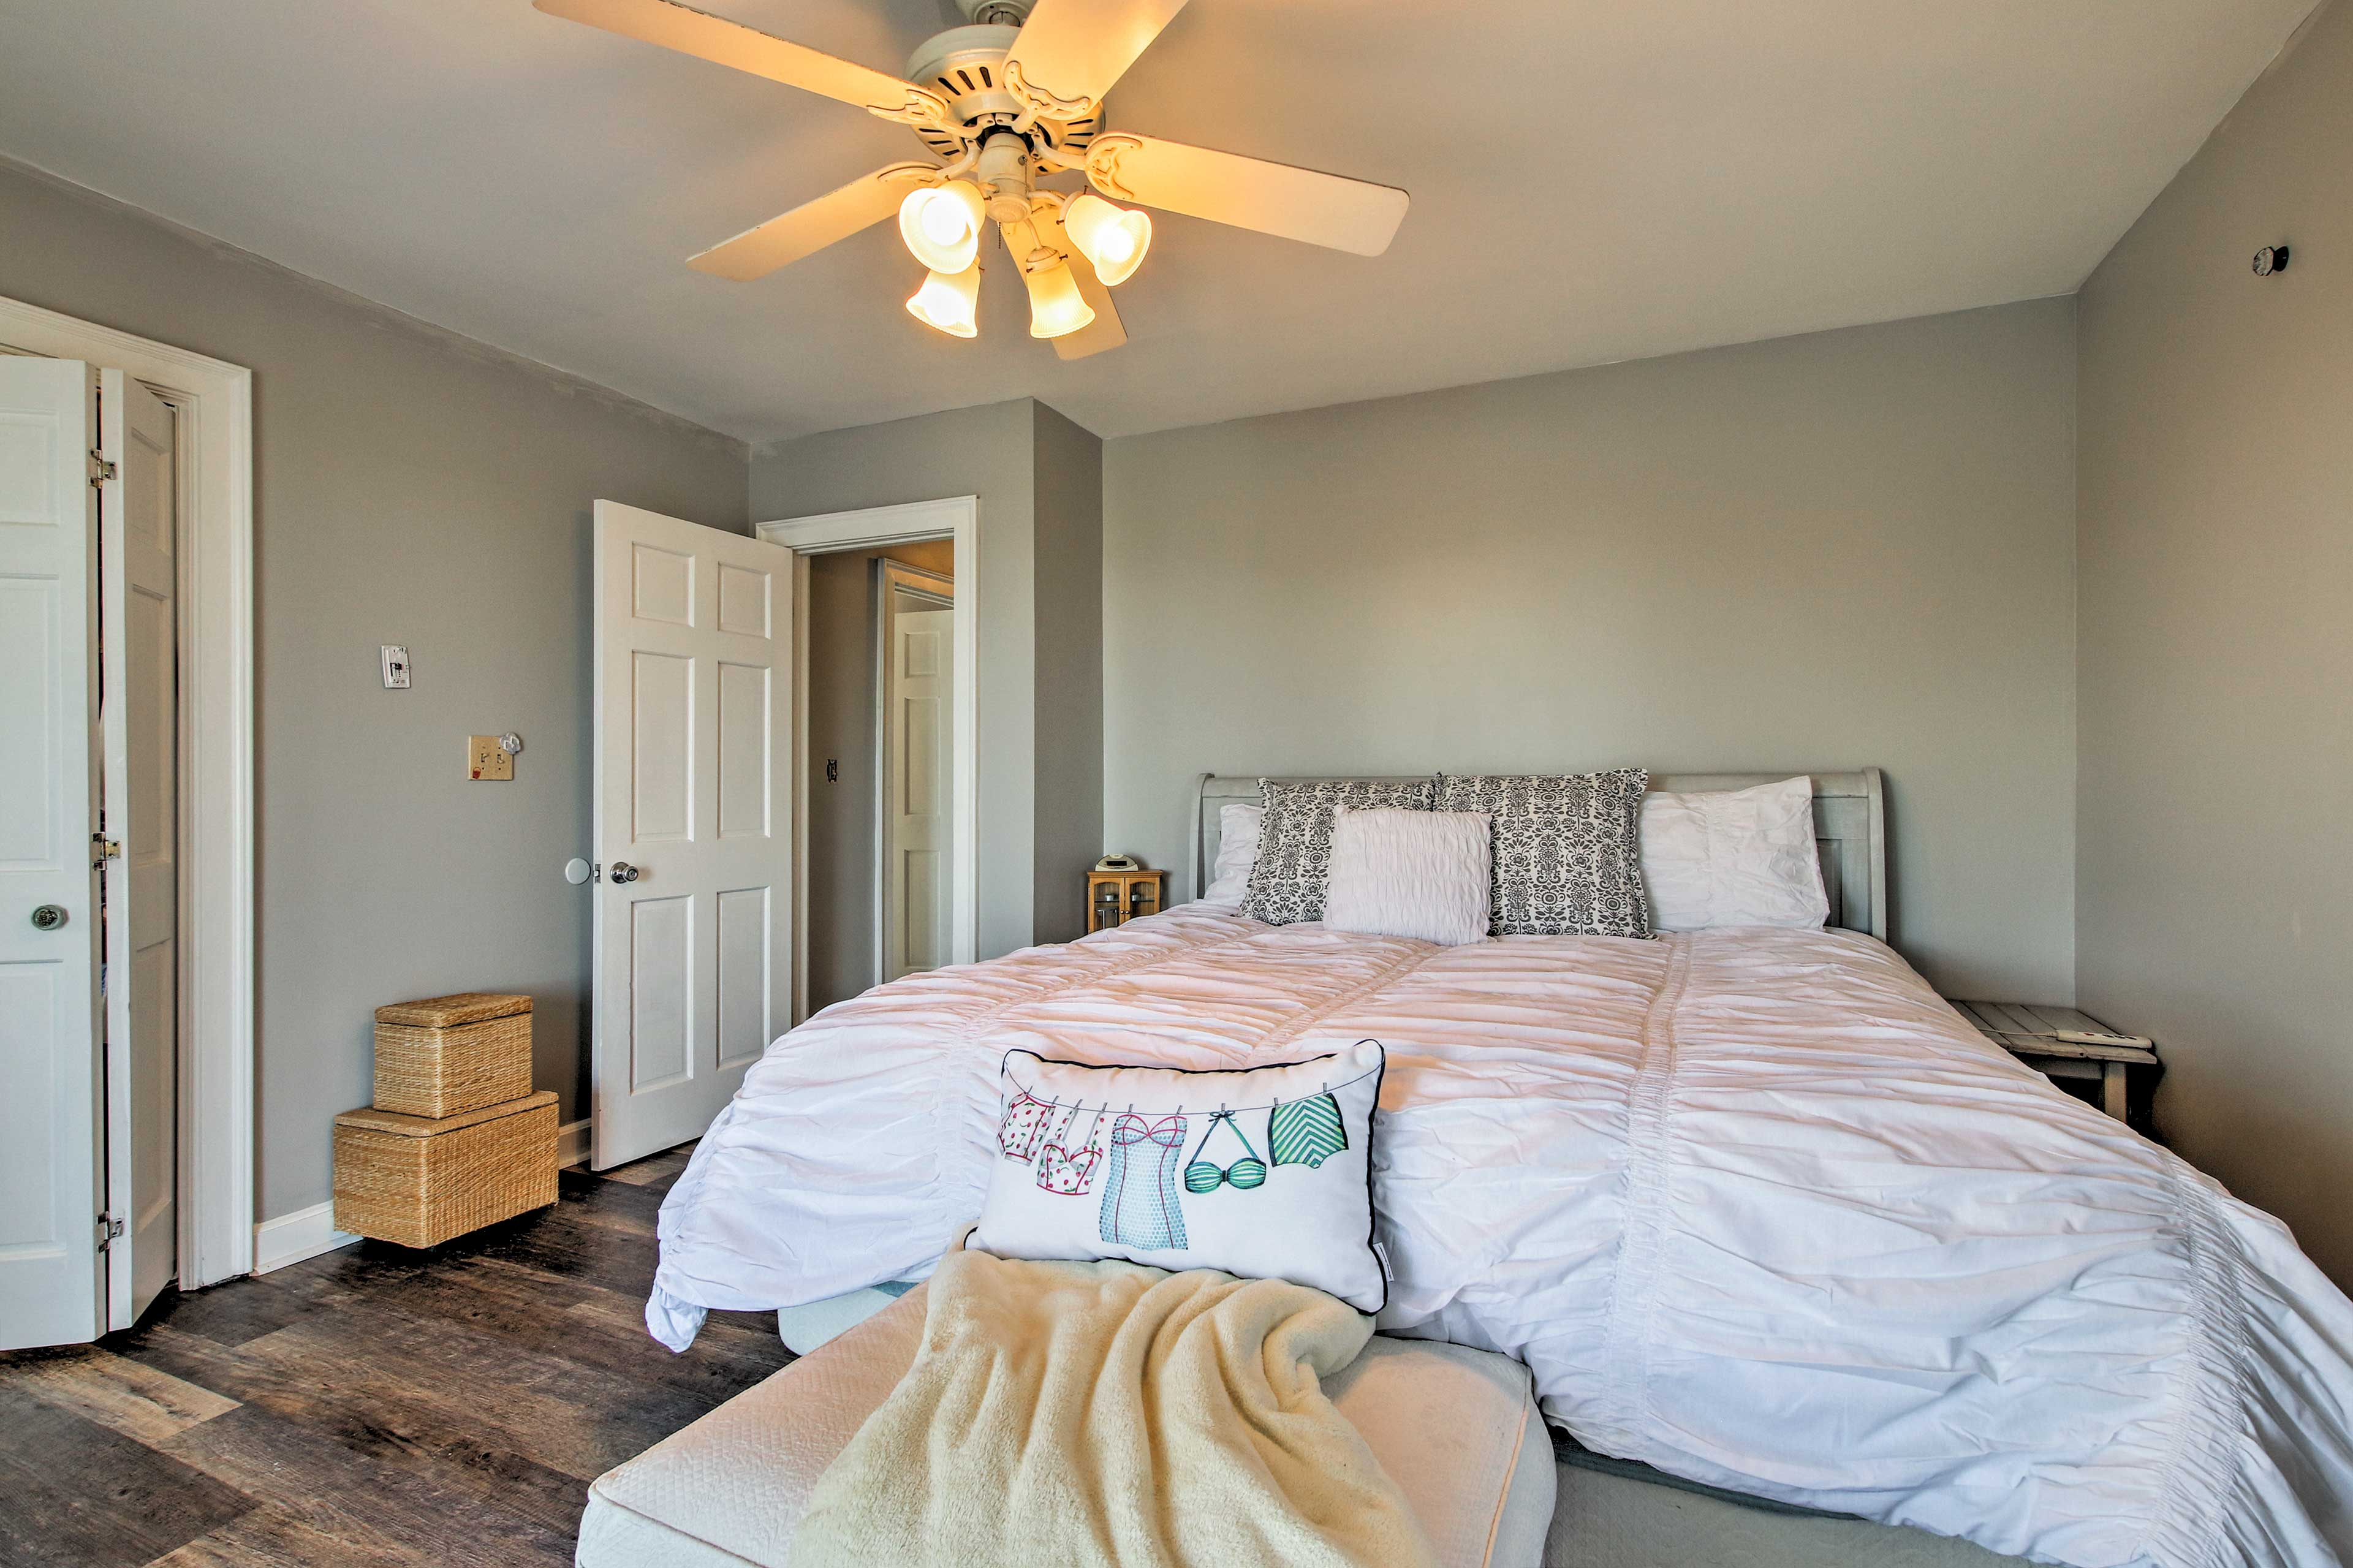 Take solace in the master bedroom for privacy.